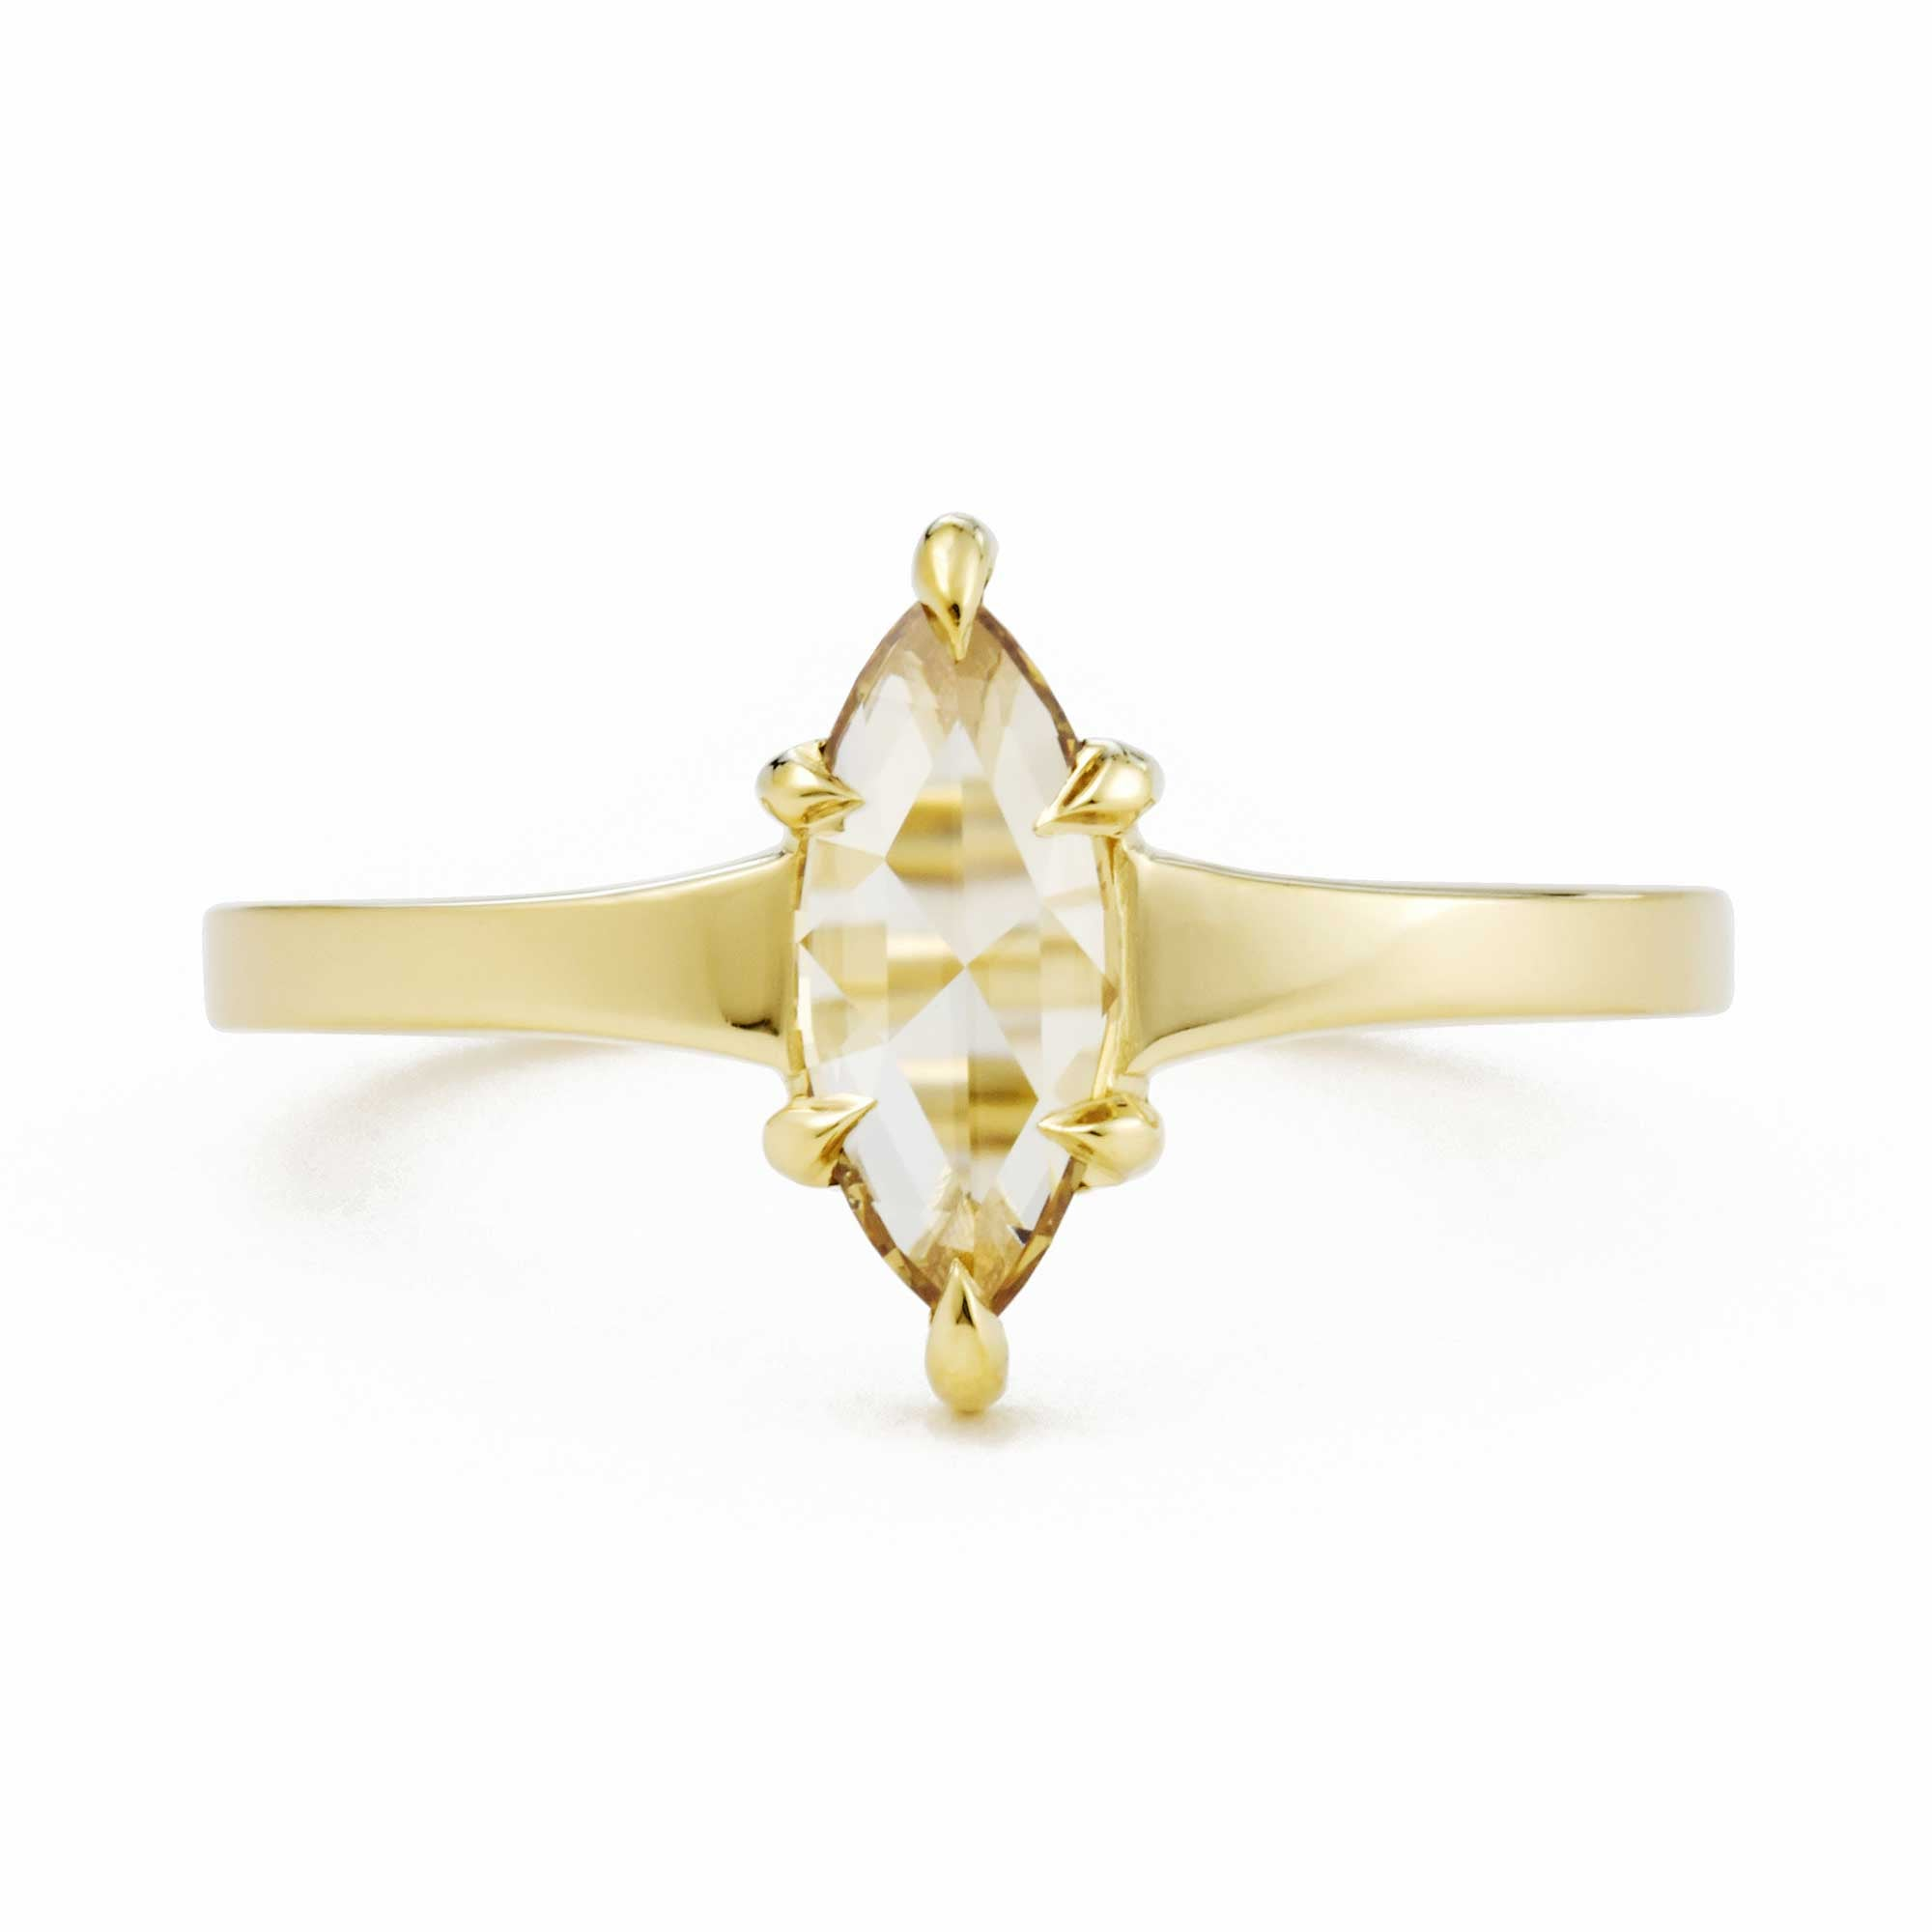 Marquis champagne diamond ring